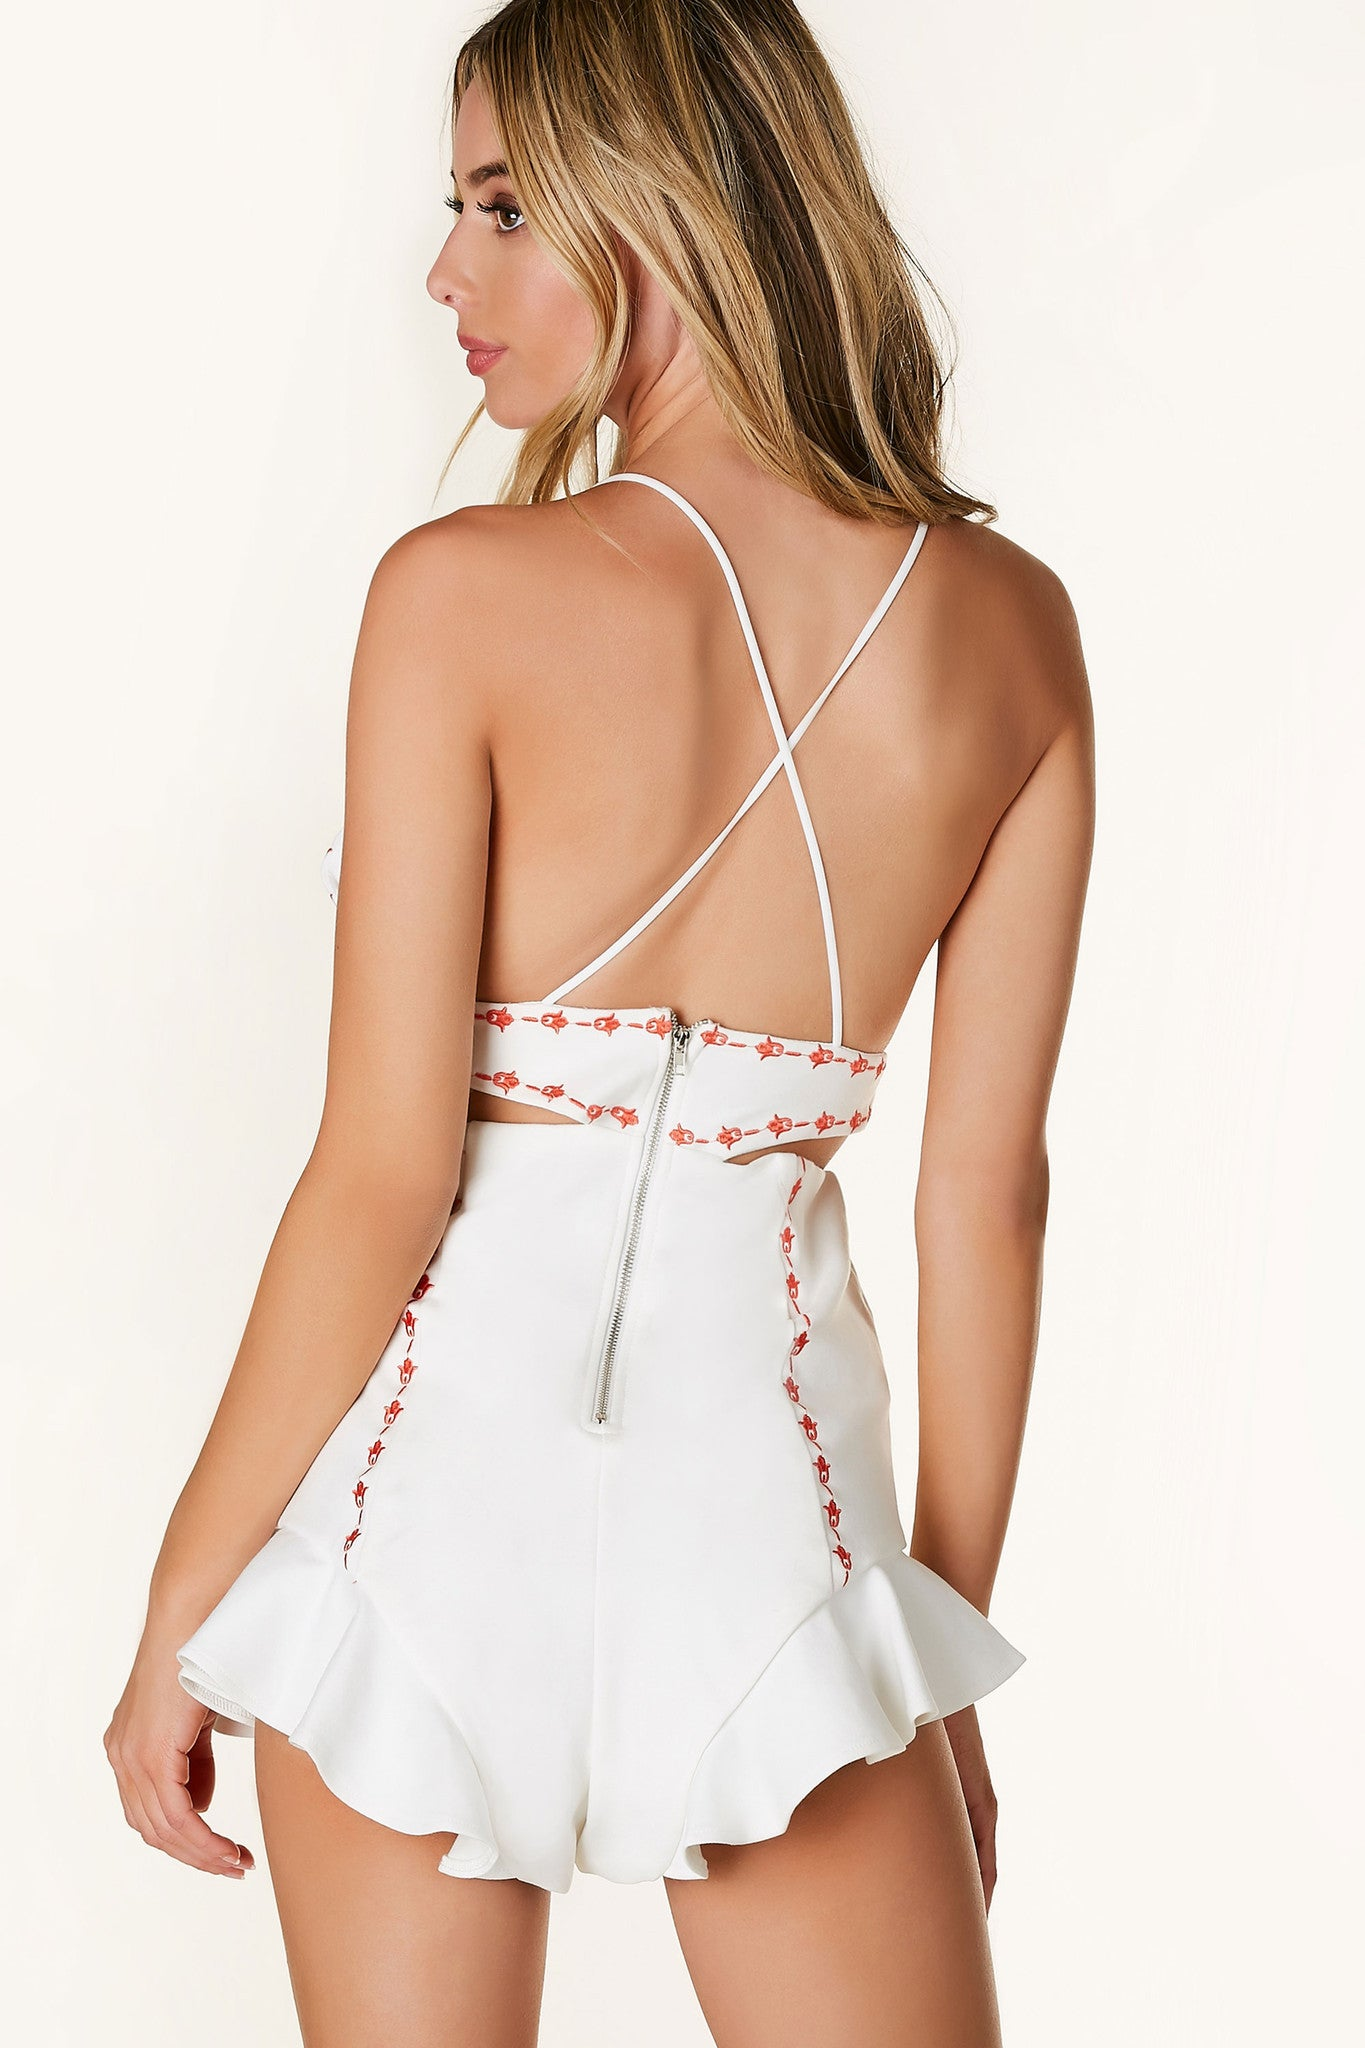 Flirty sleeveless romper with V-neckline and bold cut outs. Embroidered detailing and ruffle time with exposed back zip closure.